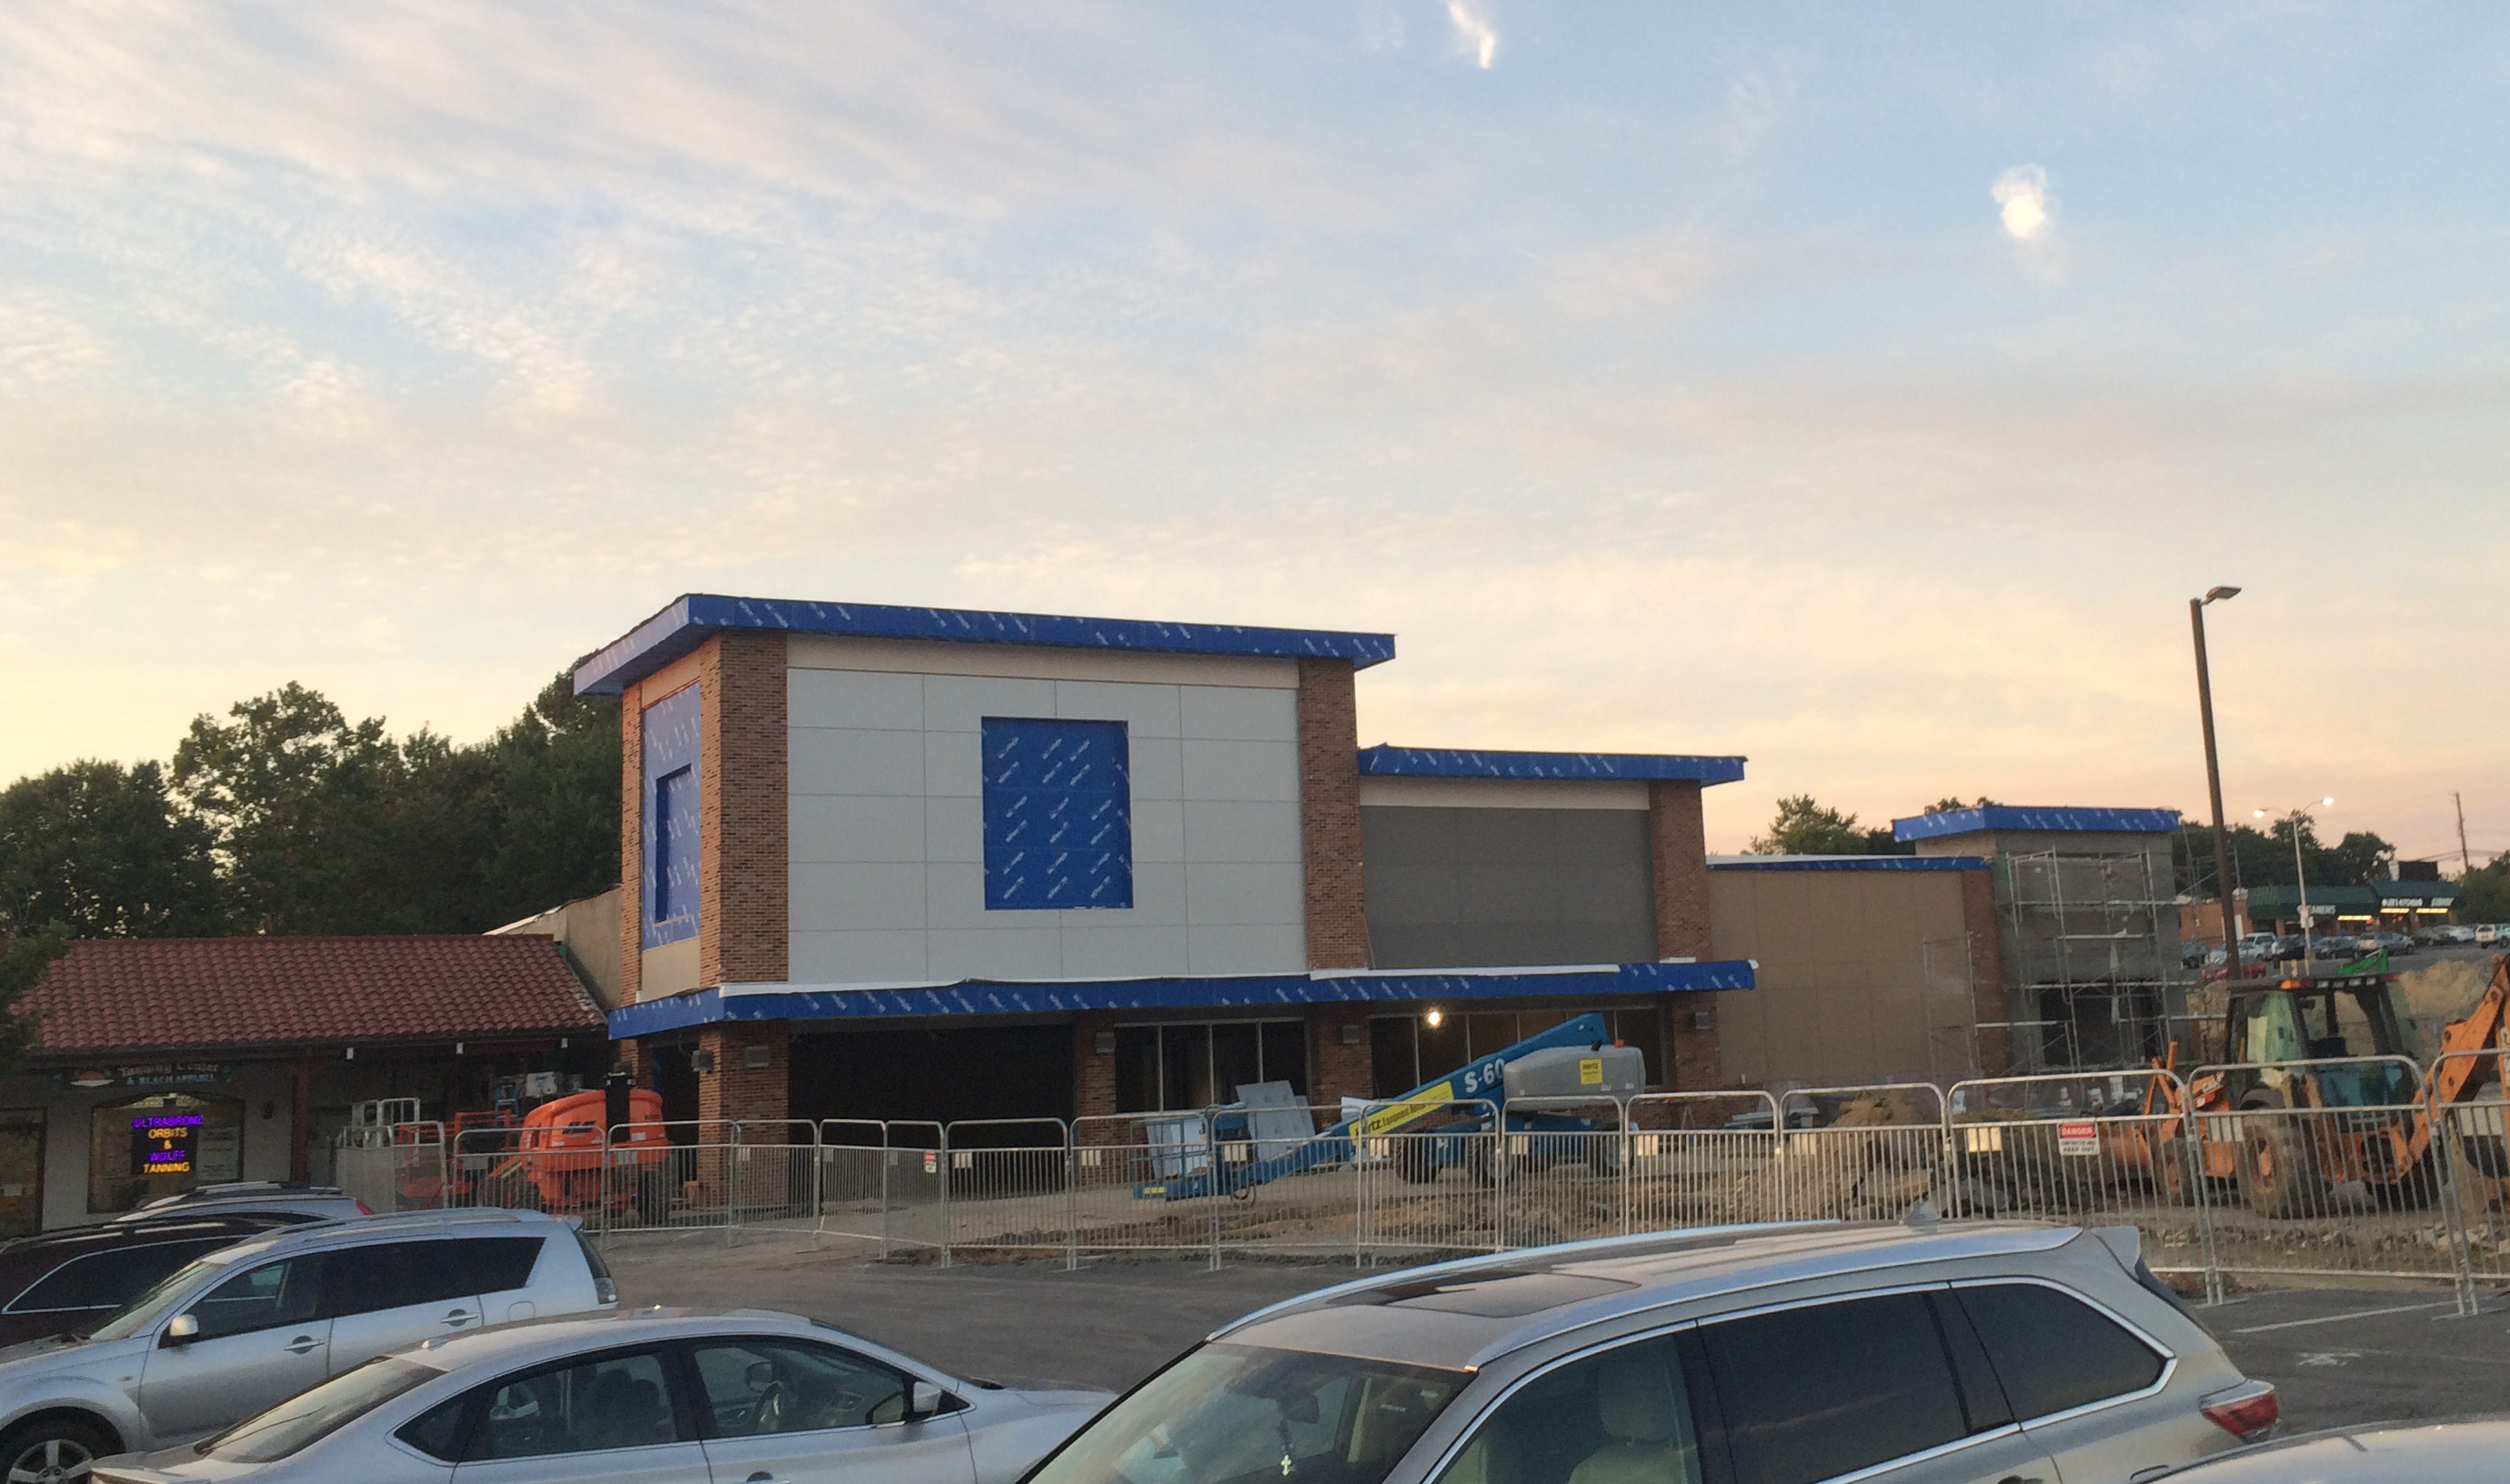 The New Aldi Grocery Store Under Construction